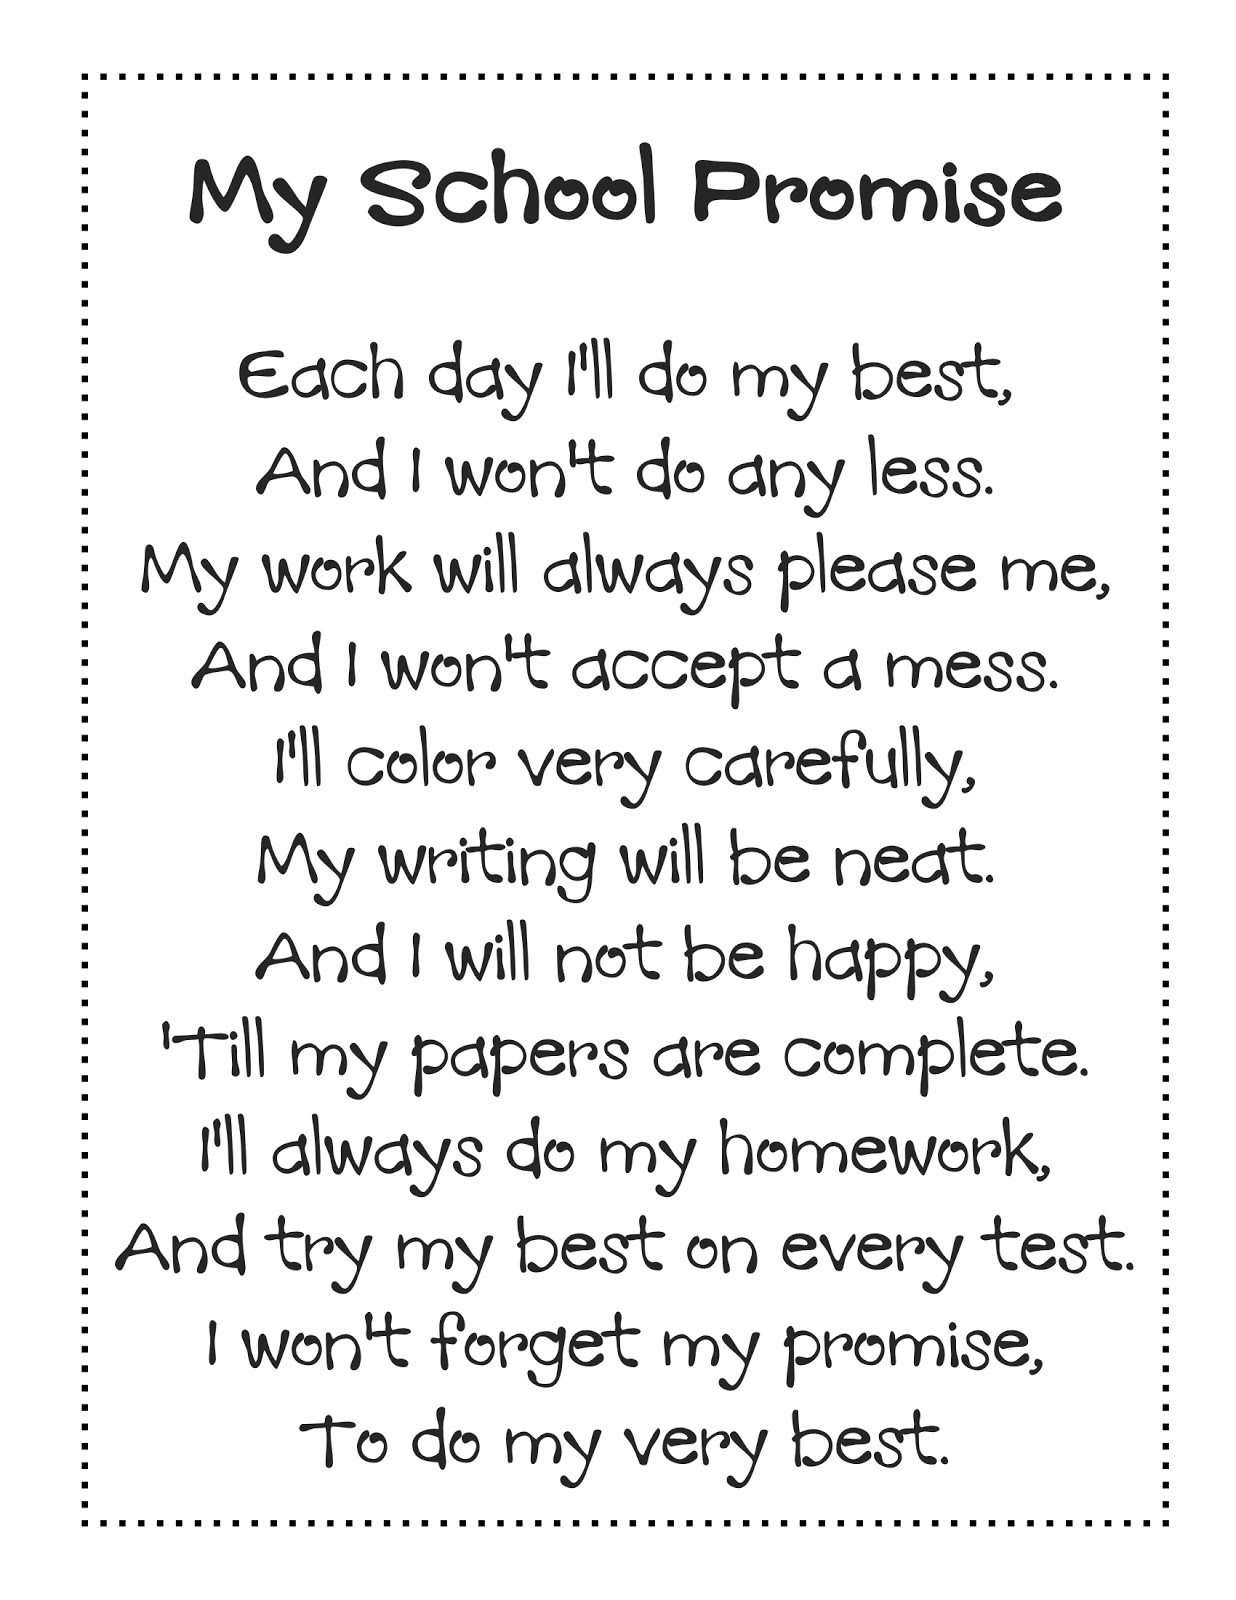 poem i will use is my school promise to download the poem please visit ...